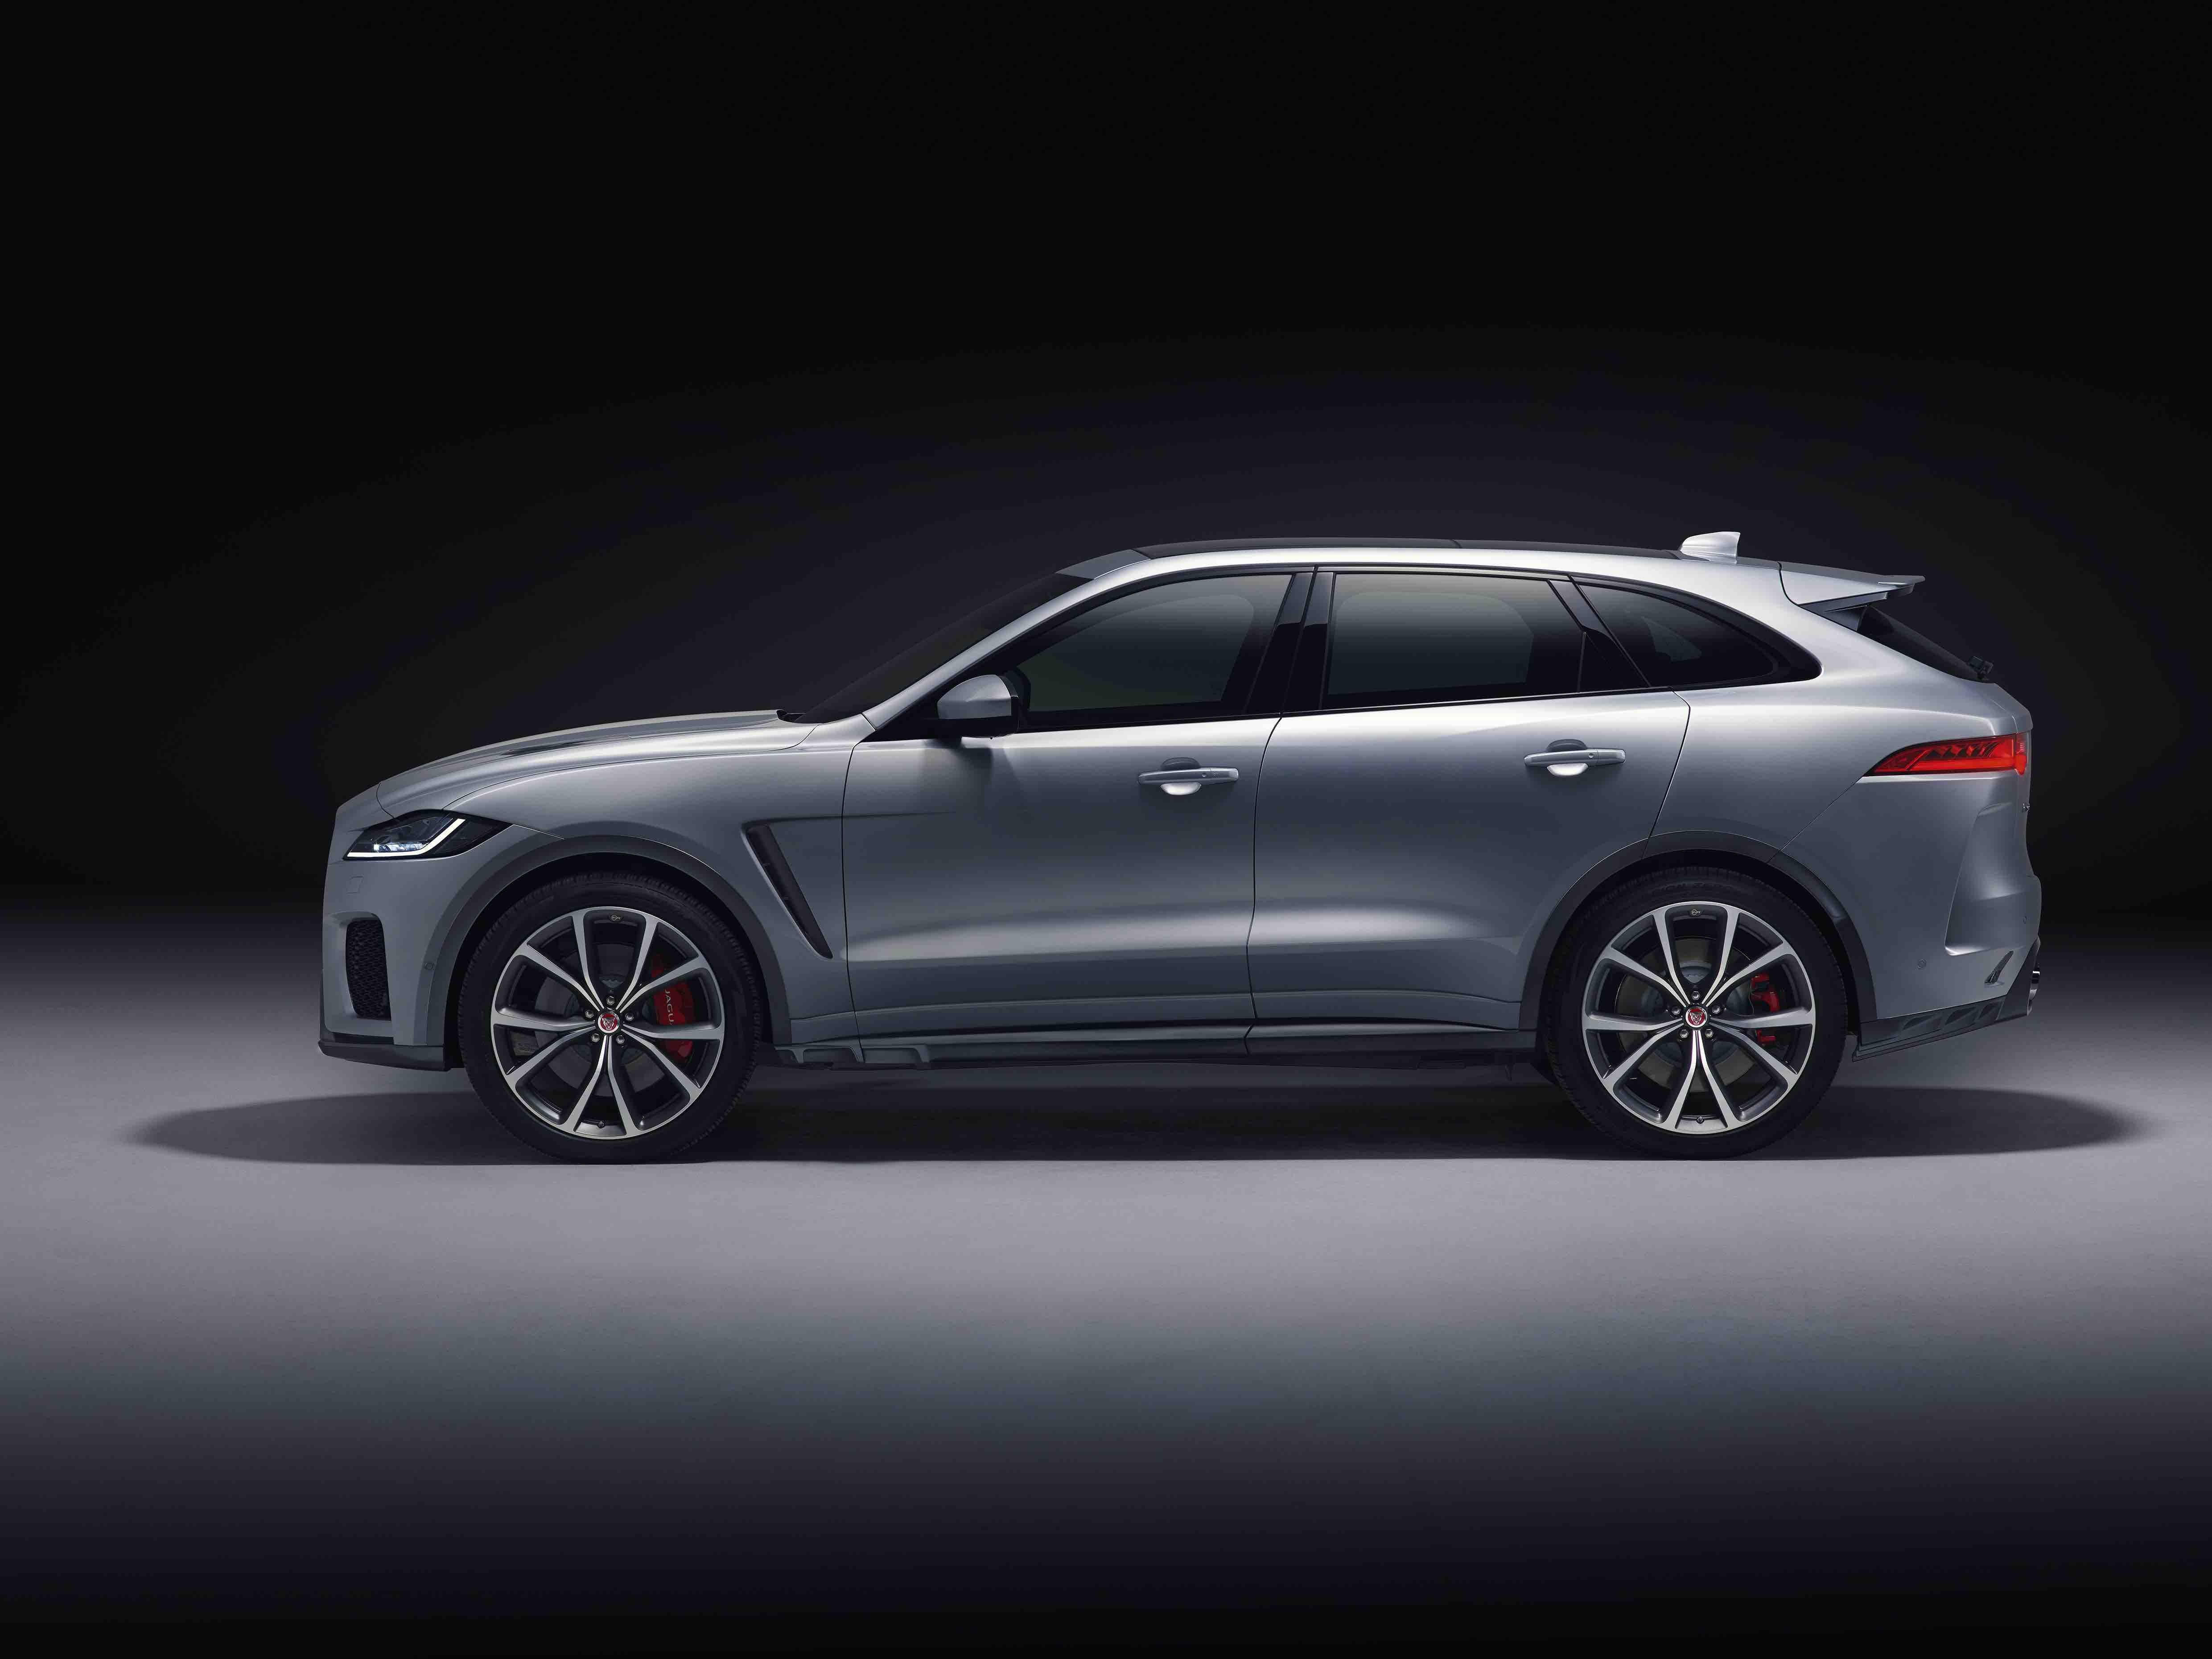 66 All New 2020 Jaguar I Pace Exterior Exterior by 2020 Jaguar I Pace Exterior